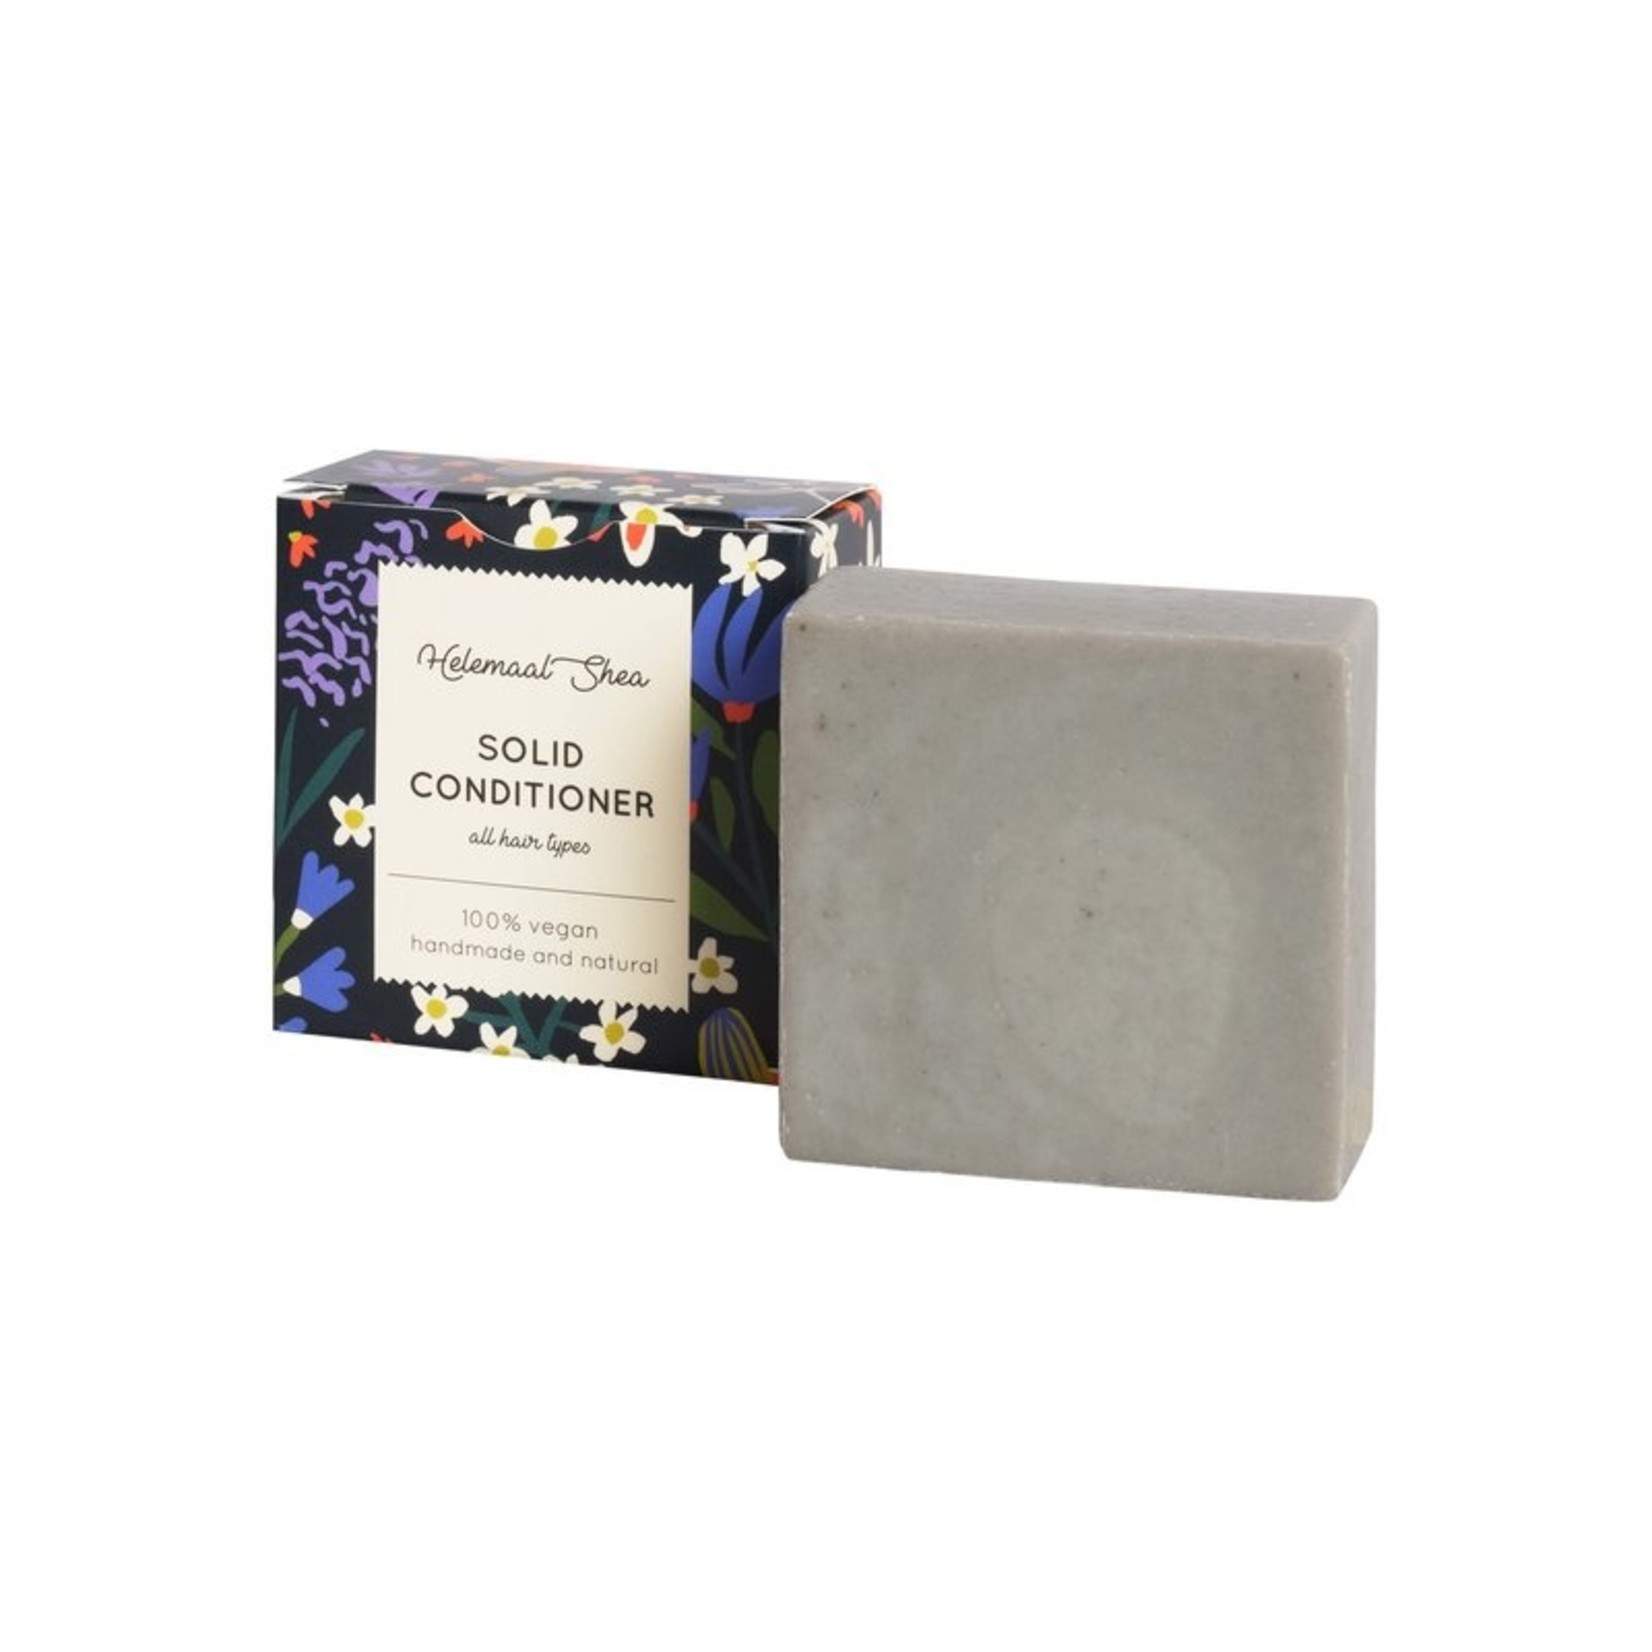 Helemaal Shea Solid conditioner bar - alle haartypes - *Helemaal Shea*